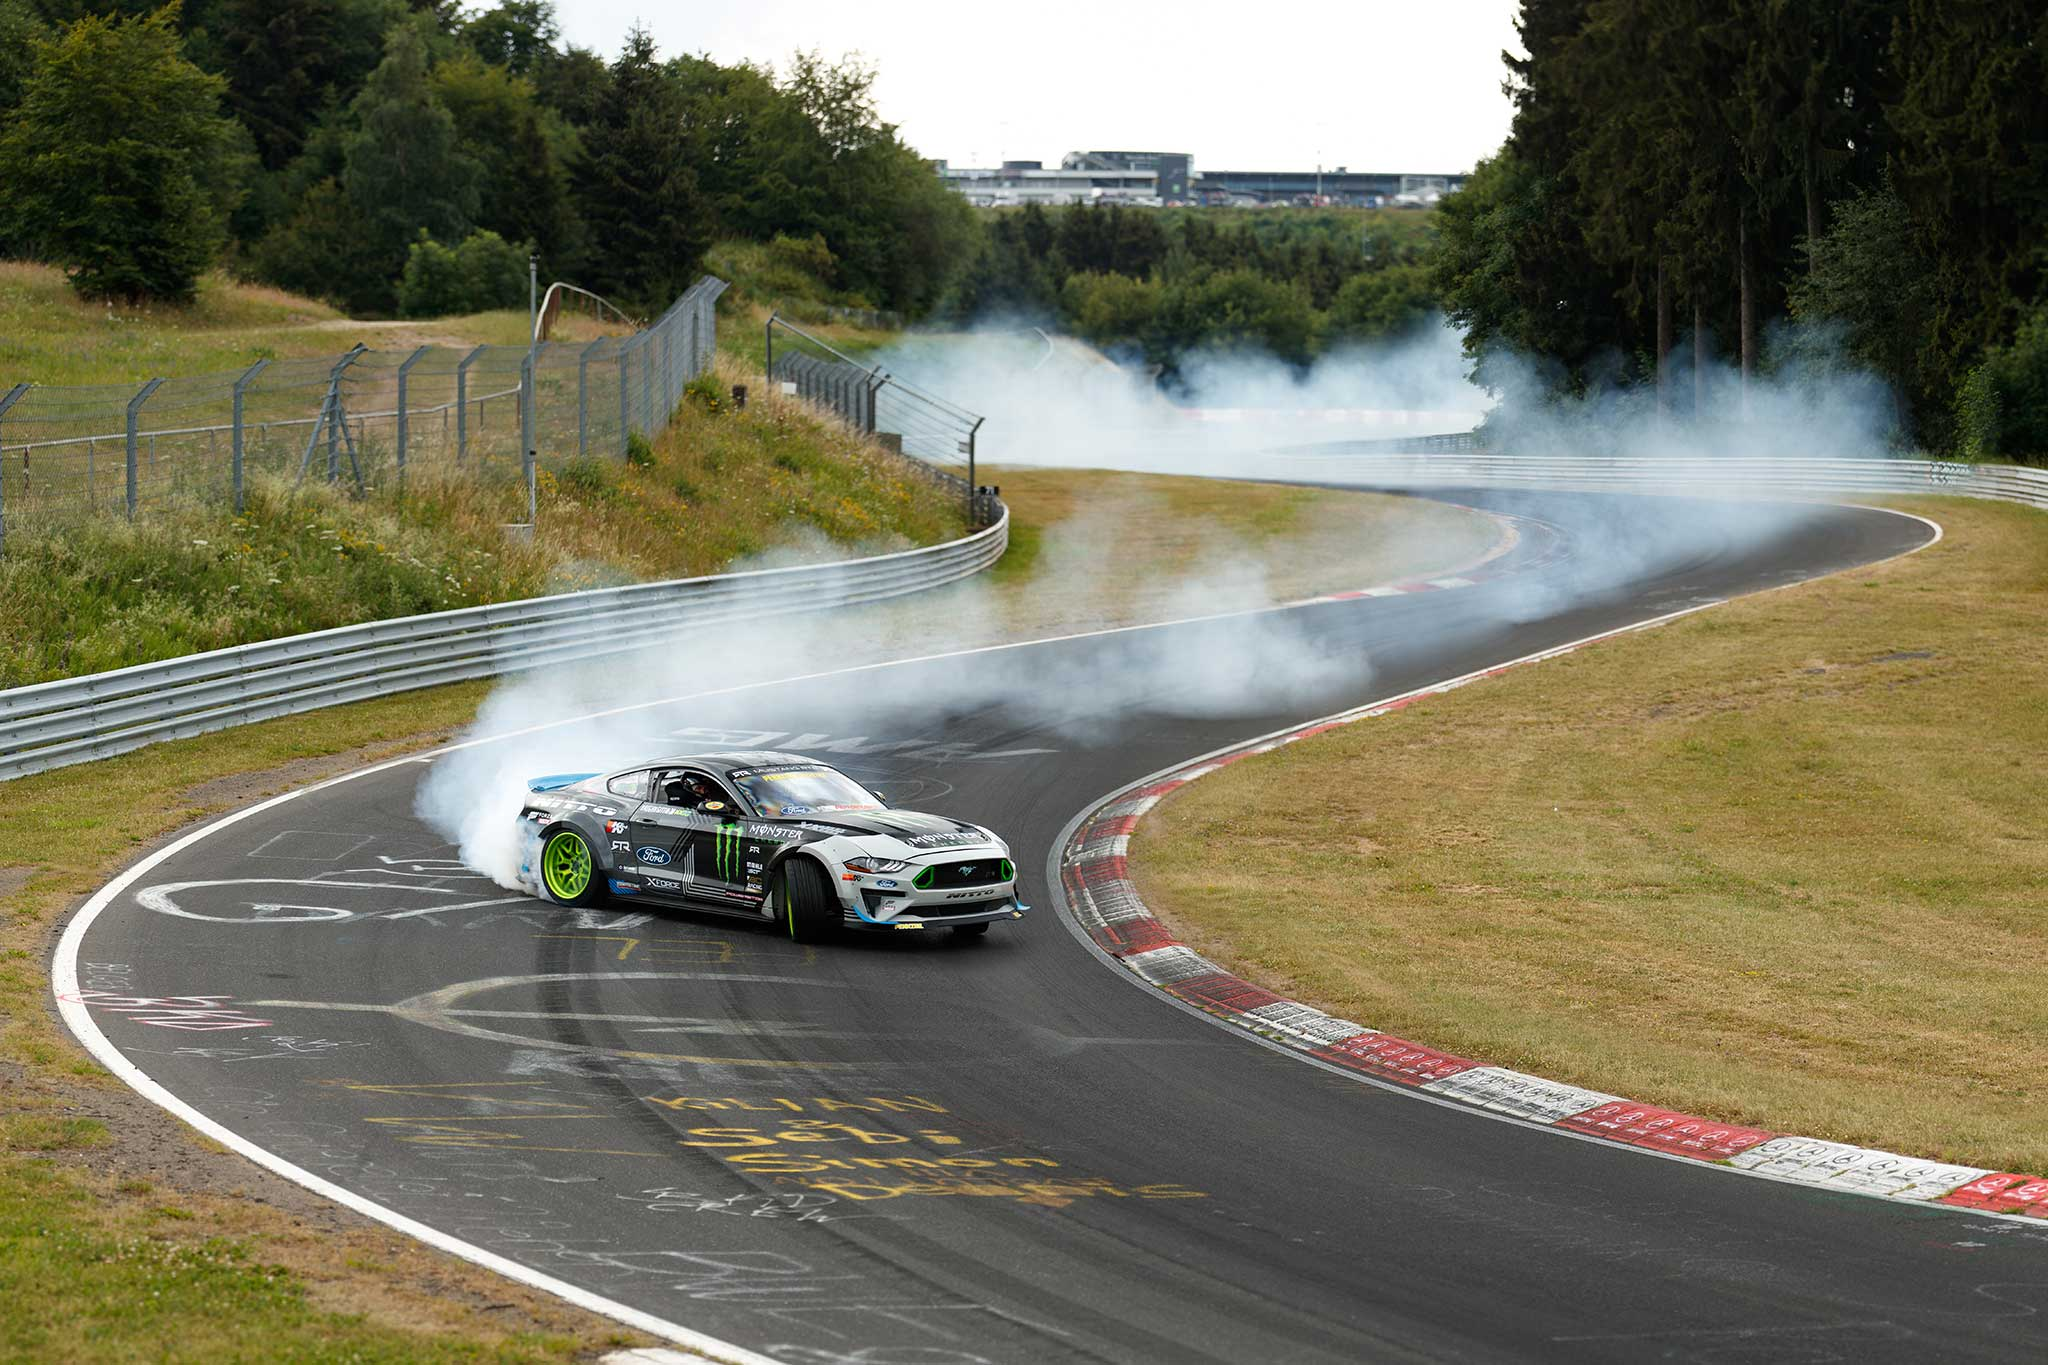 Drift, The 'Ring has a drift king: Mustang masters famed track, ClassicCars.com Journal